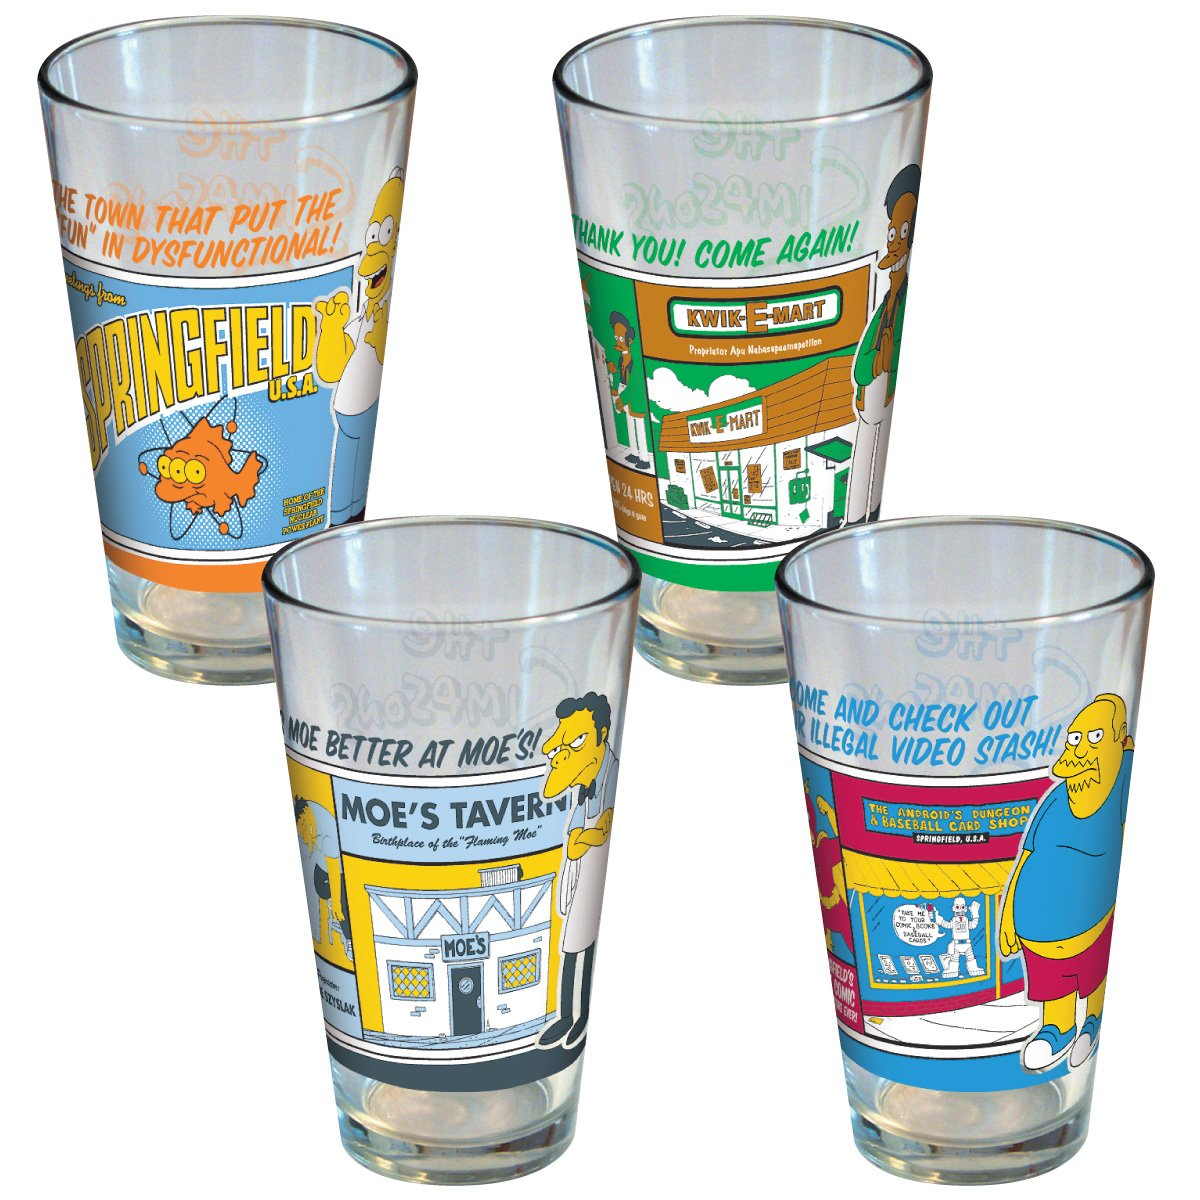 ICUP Simpsons Greetings from Springfield, Homer, Moe, Apu, Comic Book Guy Pint Glass, 4-Pack 10623